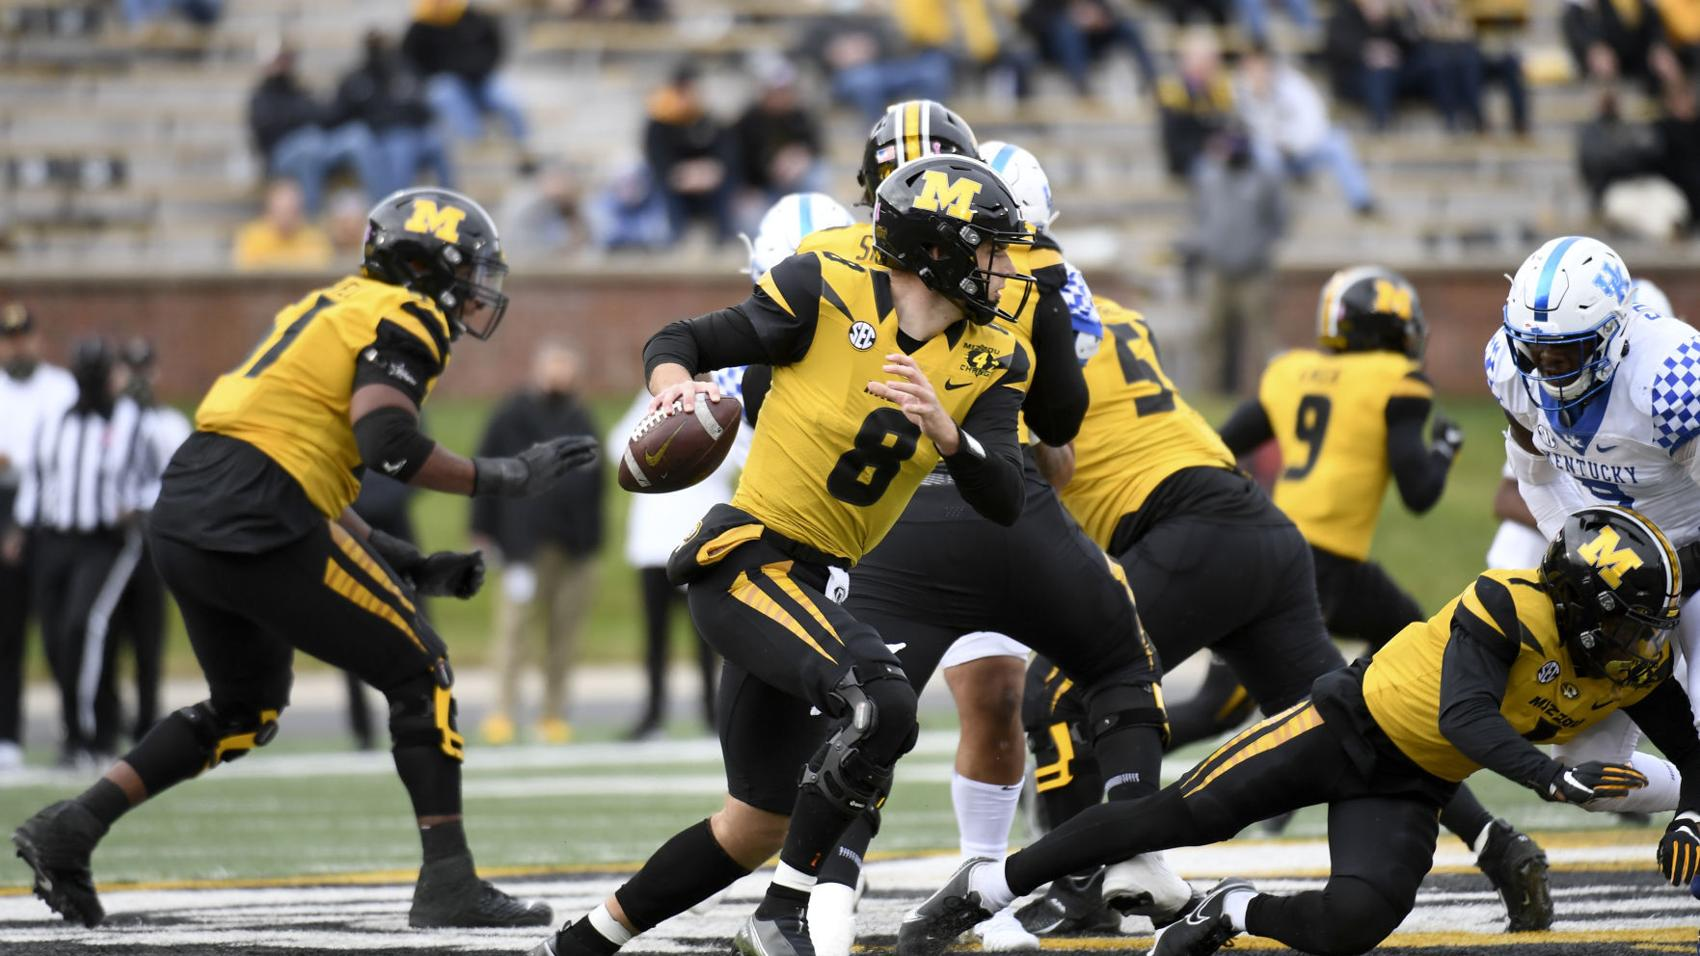 Mizzou's Bazelak doesn't let himself 'get bored' in supporting role vs. Kentucky